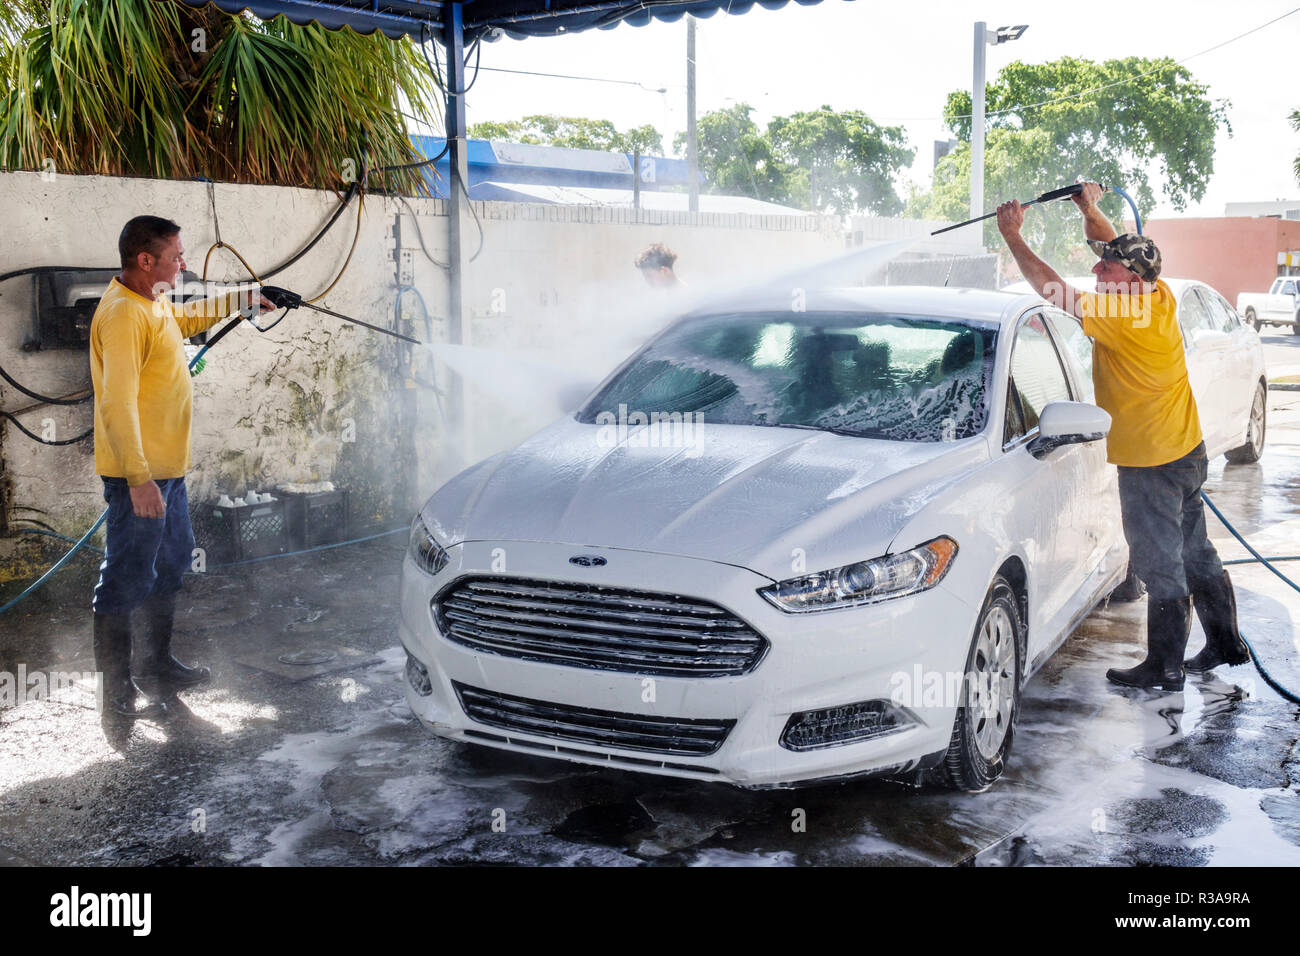 Miami Florida Little Havana car wash white Ford Fusion Hispanic man working cleaning water hose high pressure spray spraying teamwork - Stock Image